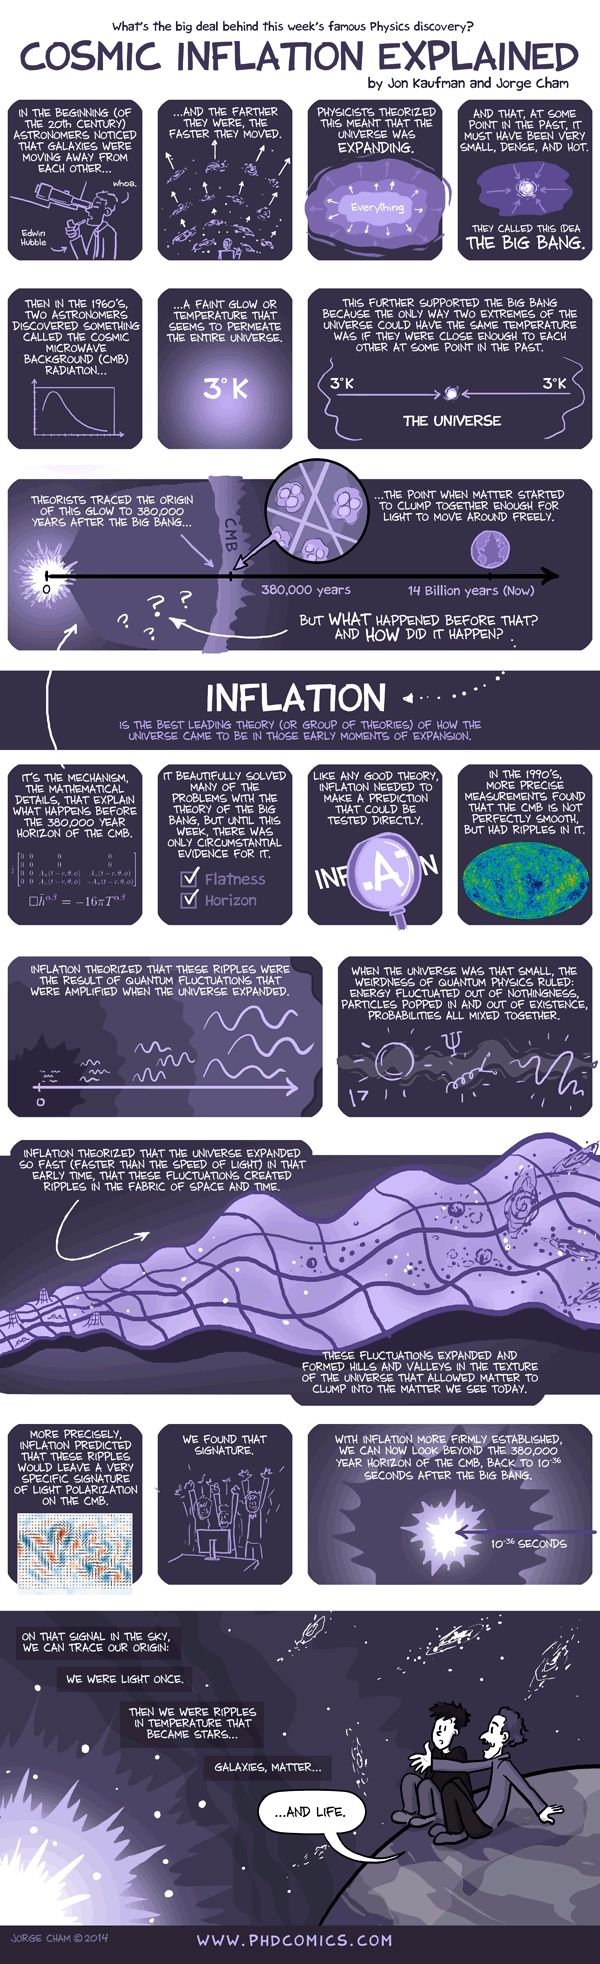 03/19/14 PHD comic: 'Cosmic Inflation Explained'